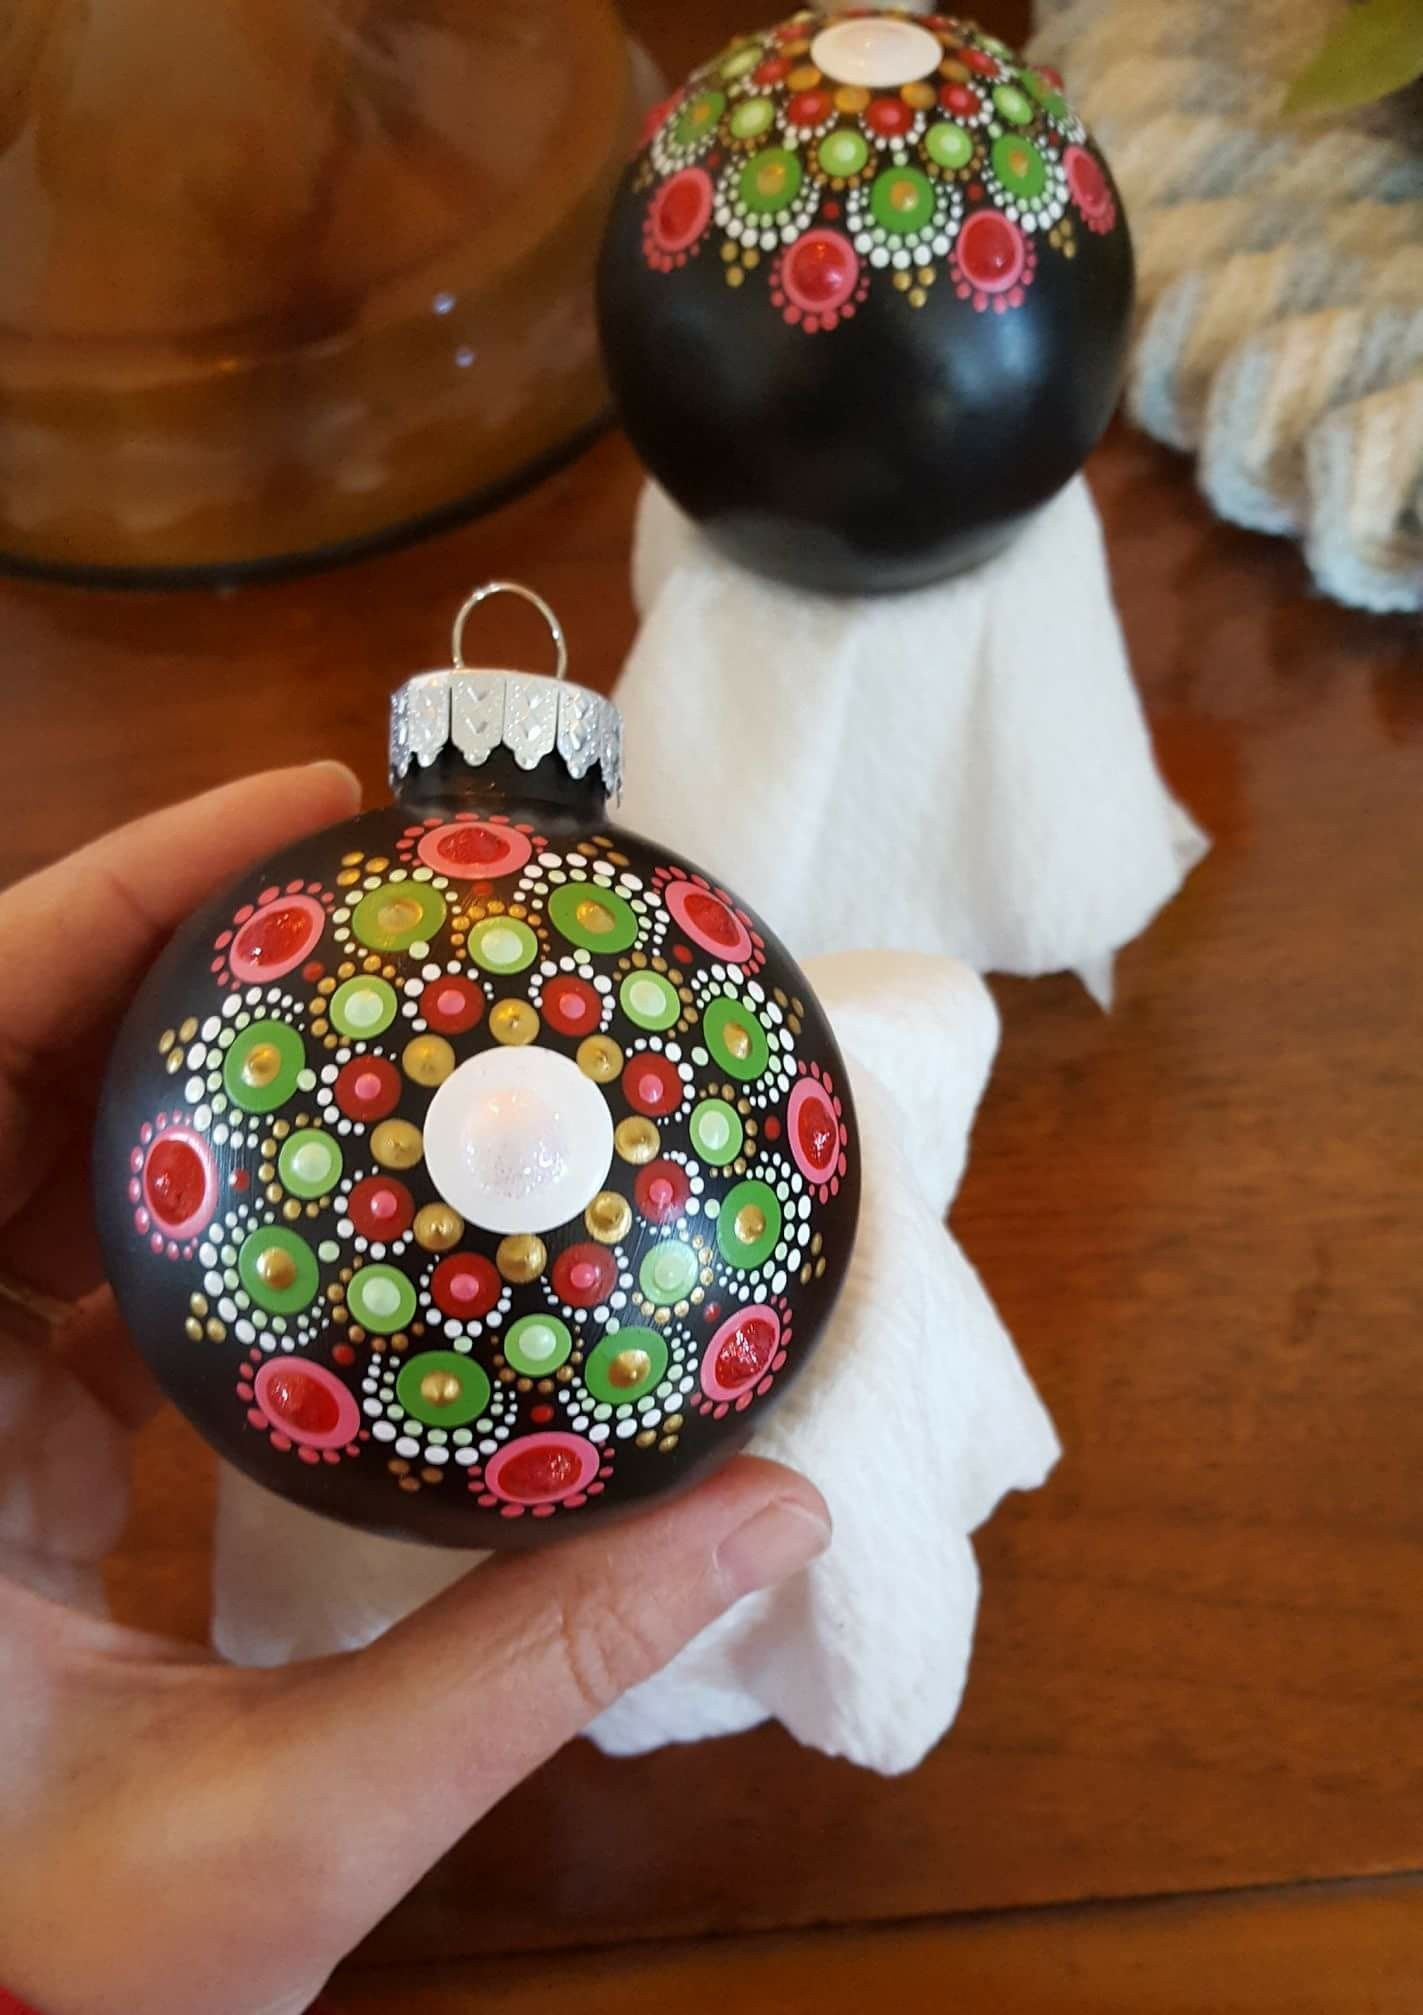 Pin By Carrolle Popovich On Rock Painting Painted Christmas Ornaments Christmas Ornaments To Make Christmas Ornaments